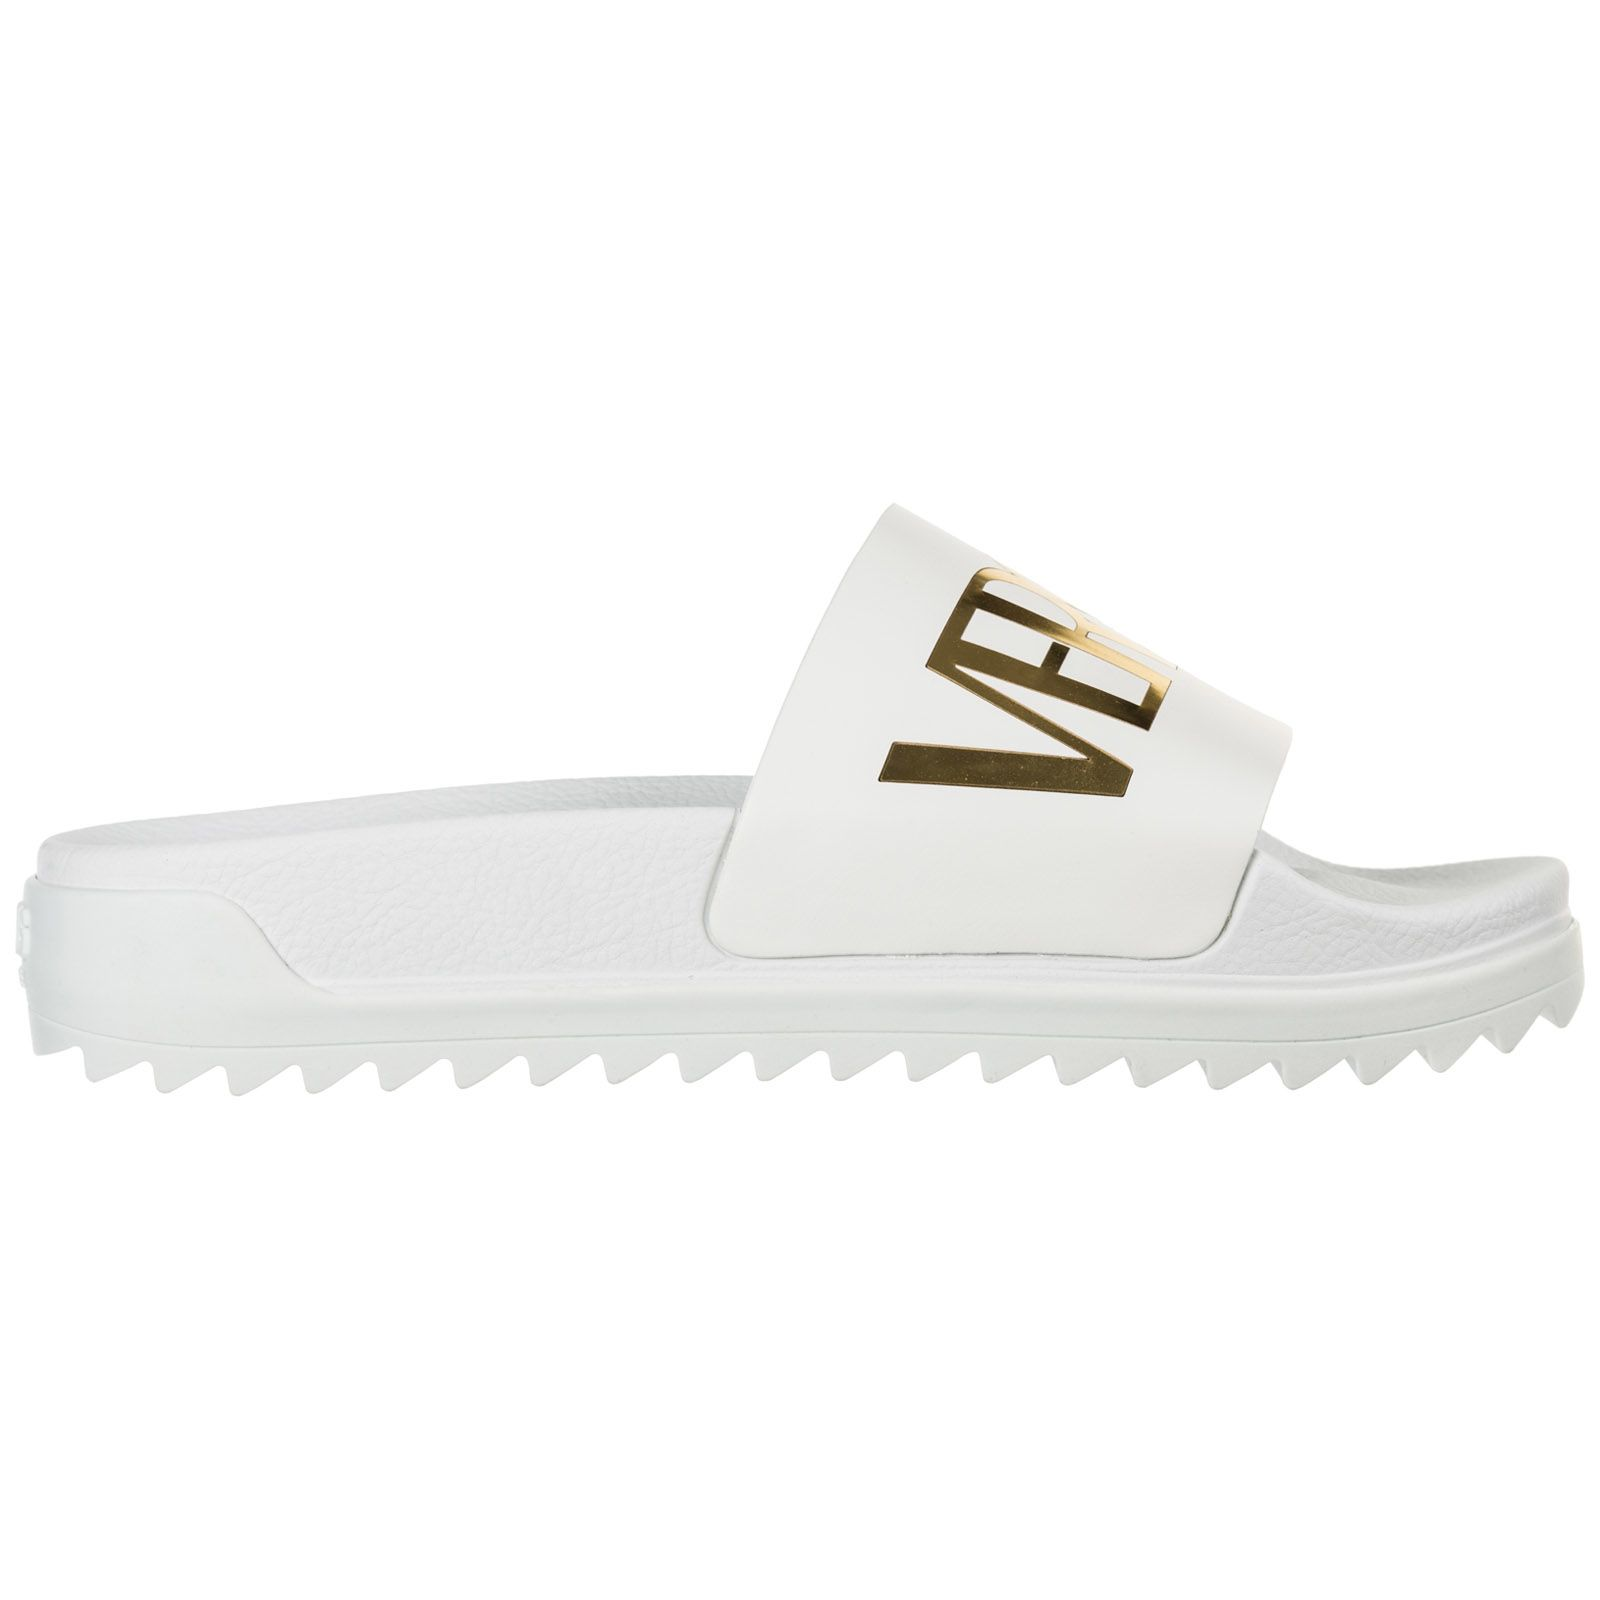 9958068bd90 Versus Versace Slippers Sandals Rubber Versus Logo - Optic white - Gold ...